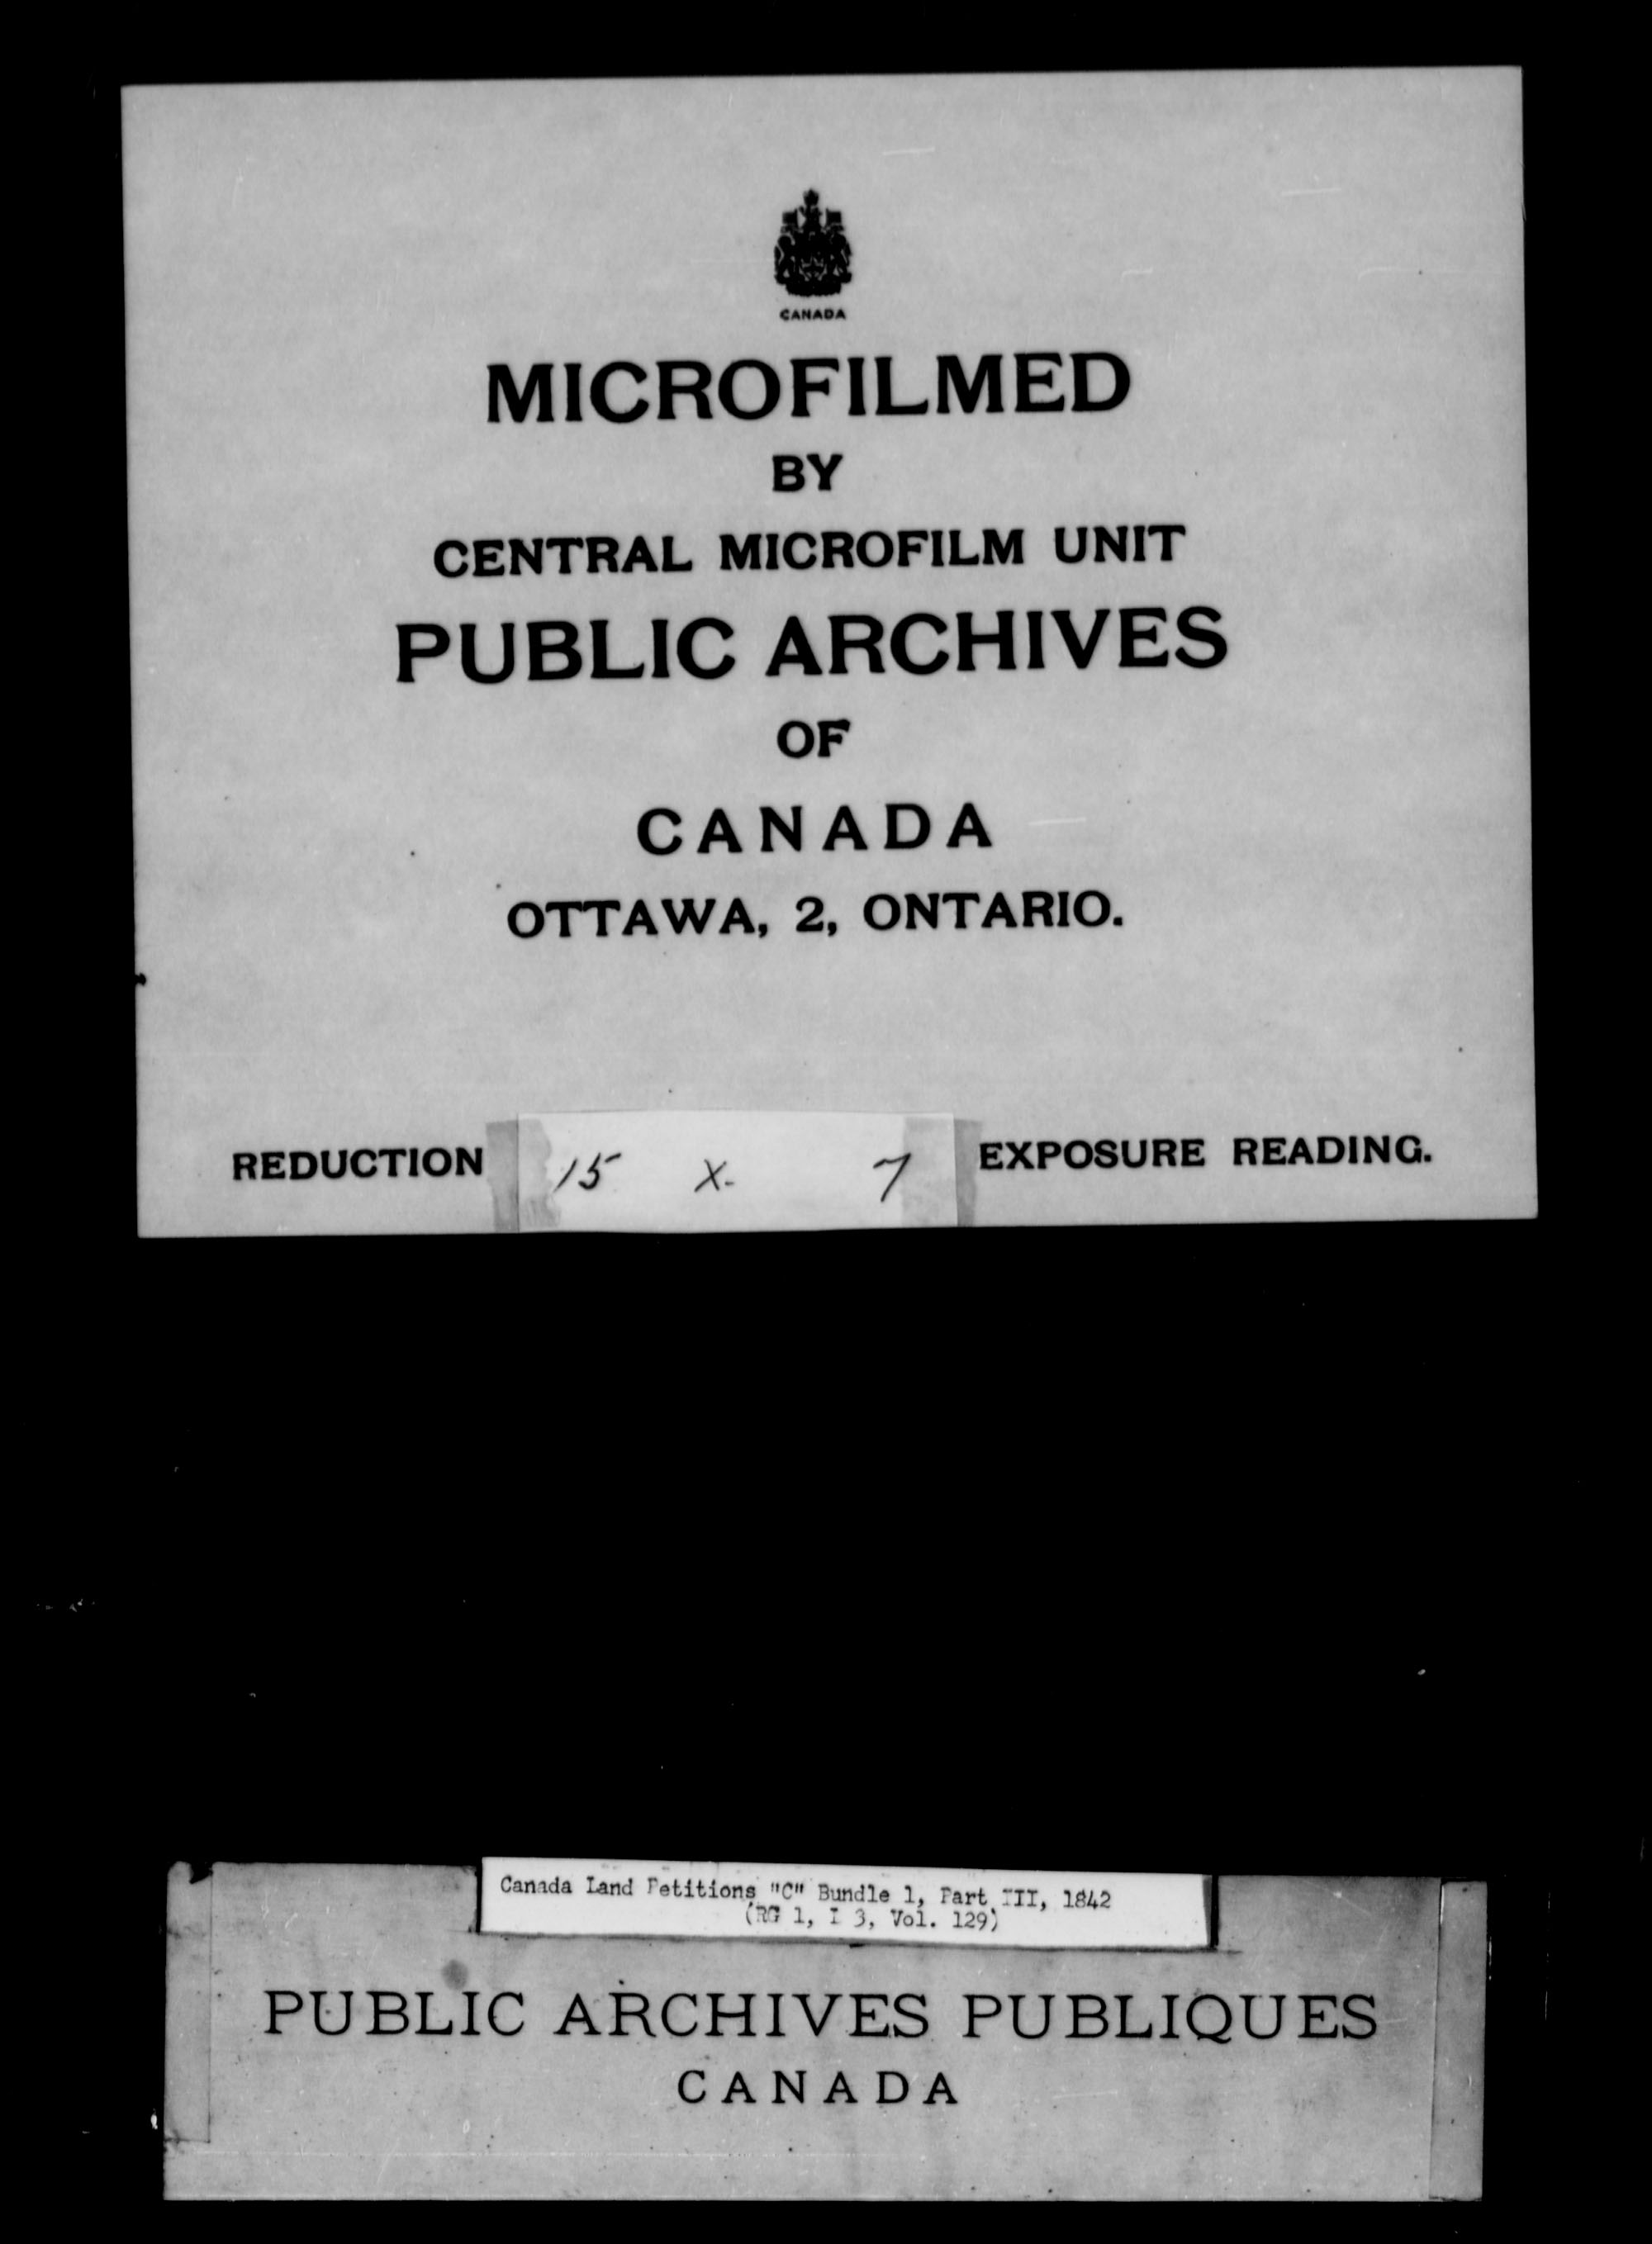 Title: Upper Canada Land Petitions (1763-1865) - Mikan Number: 205131 - Microform: c-1733